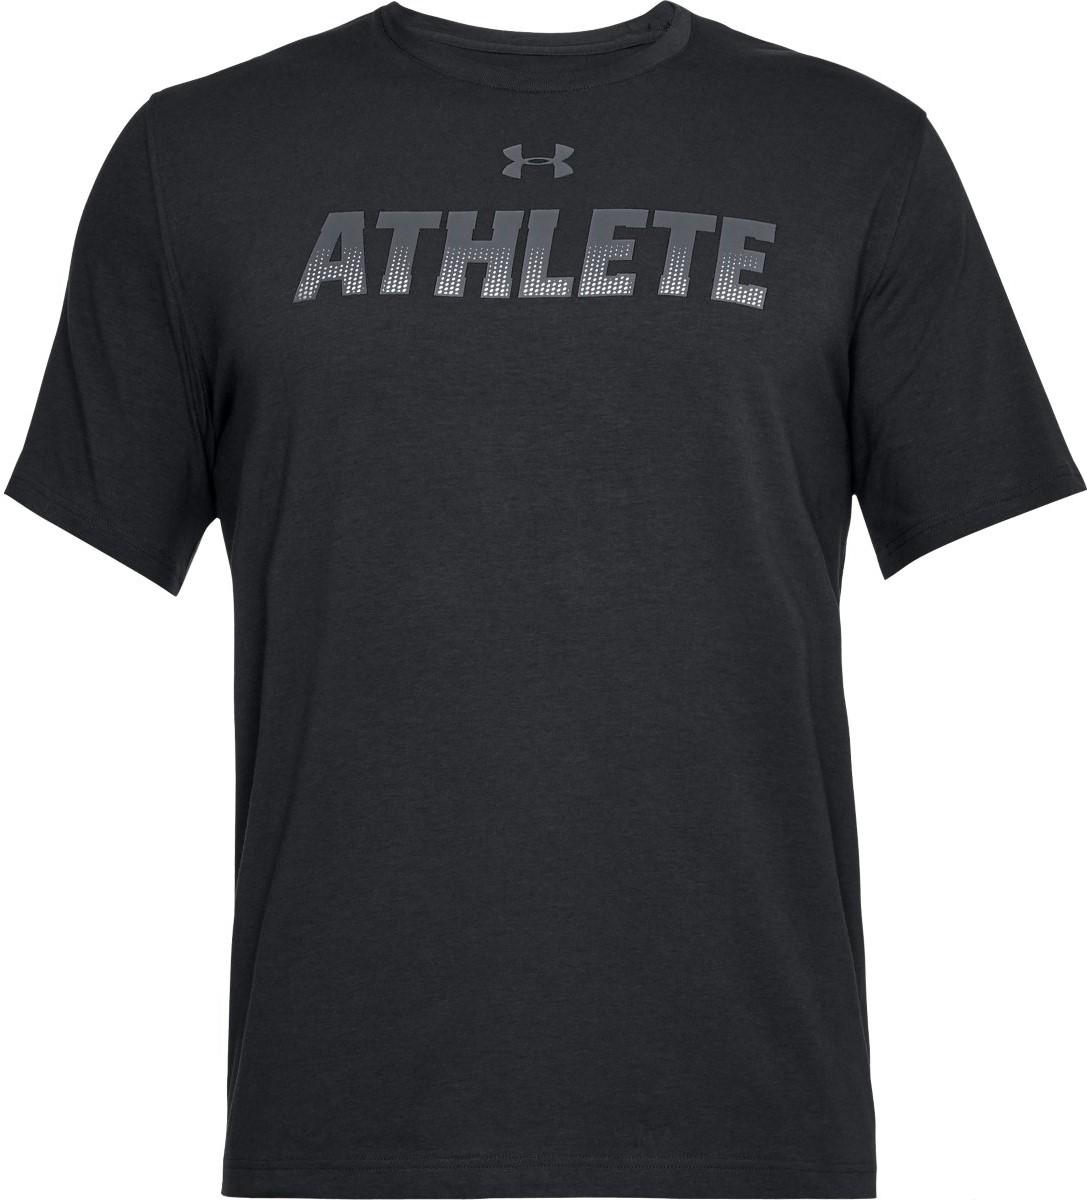 Tričko Under Armour Athlete, L